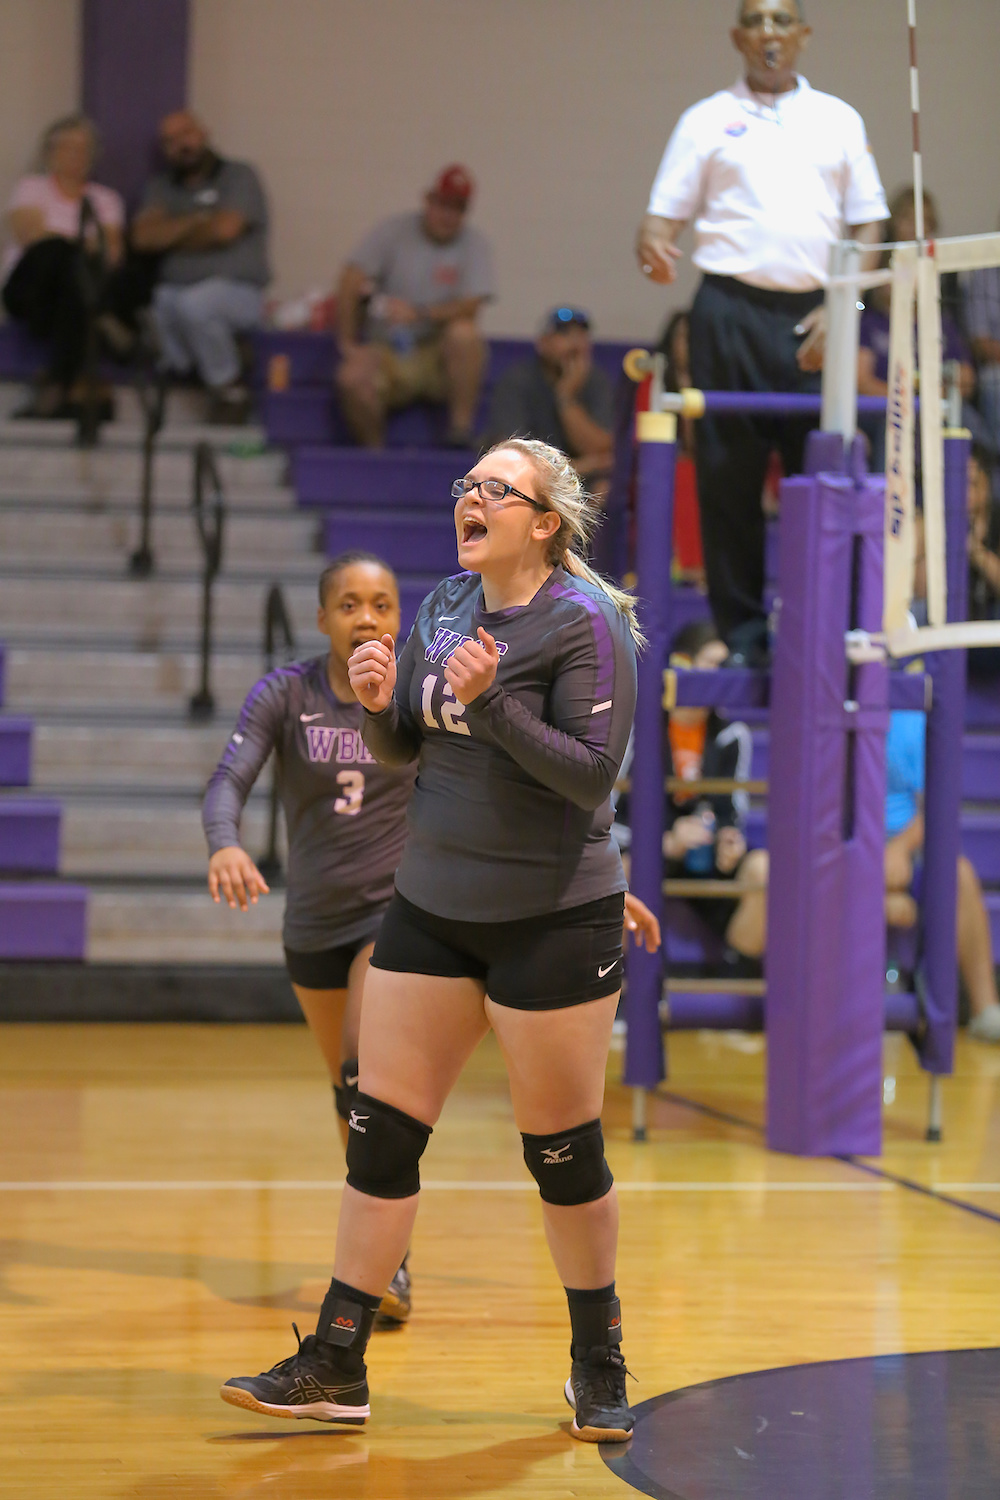 East Columbus v West Bladen volleyball 2017 10